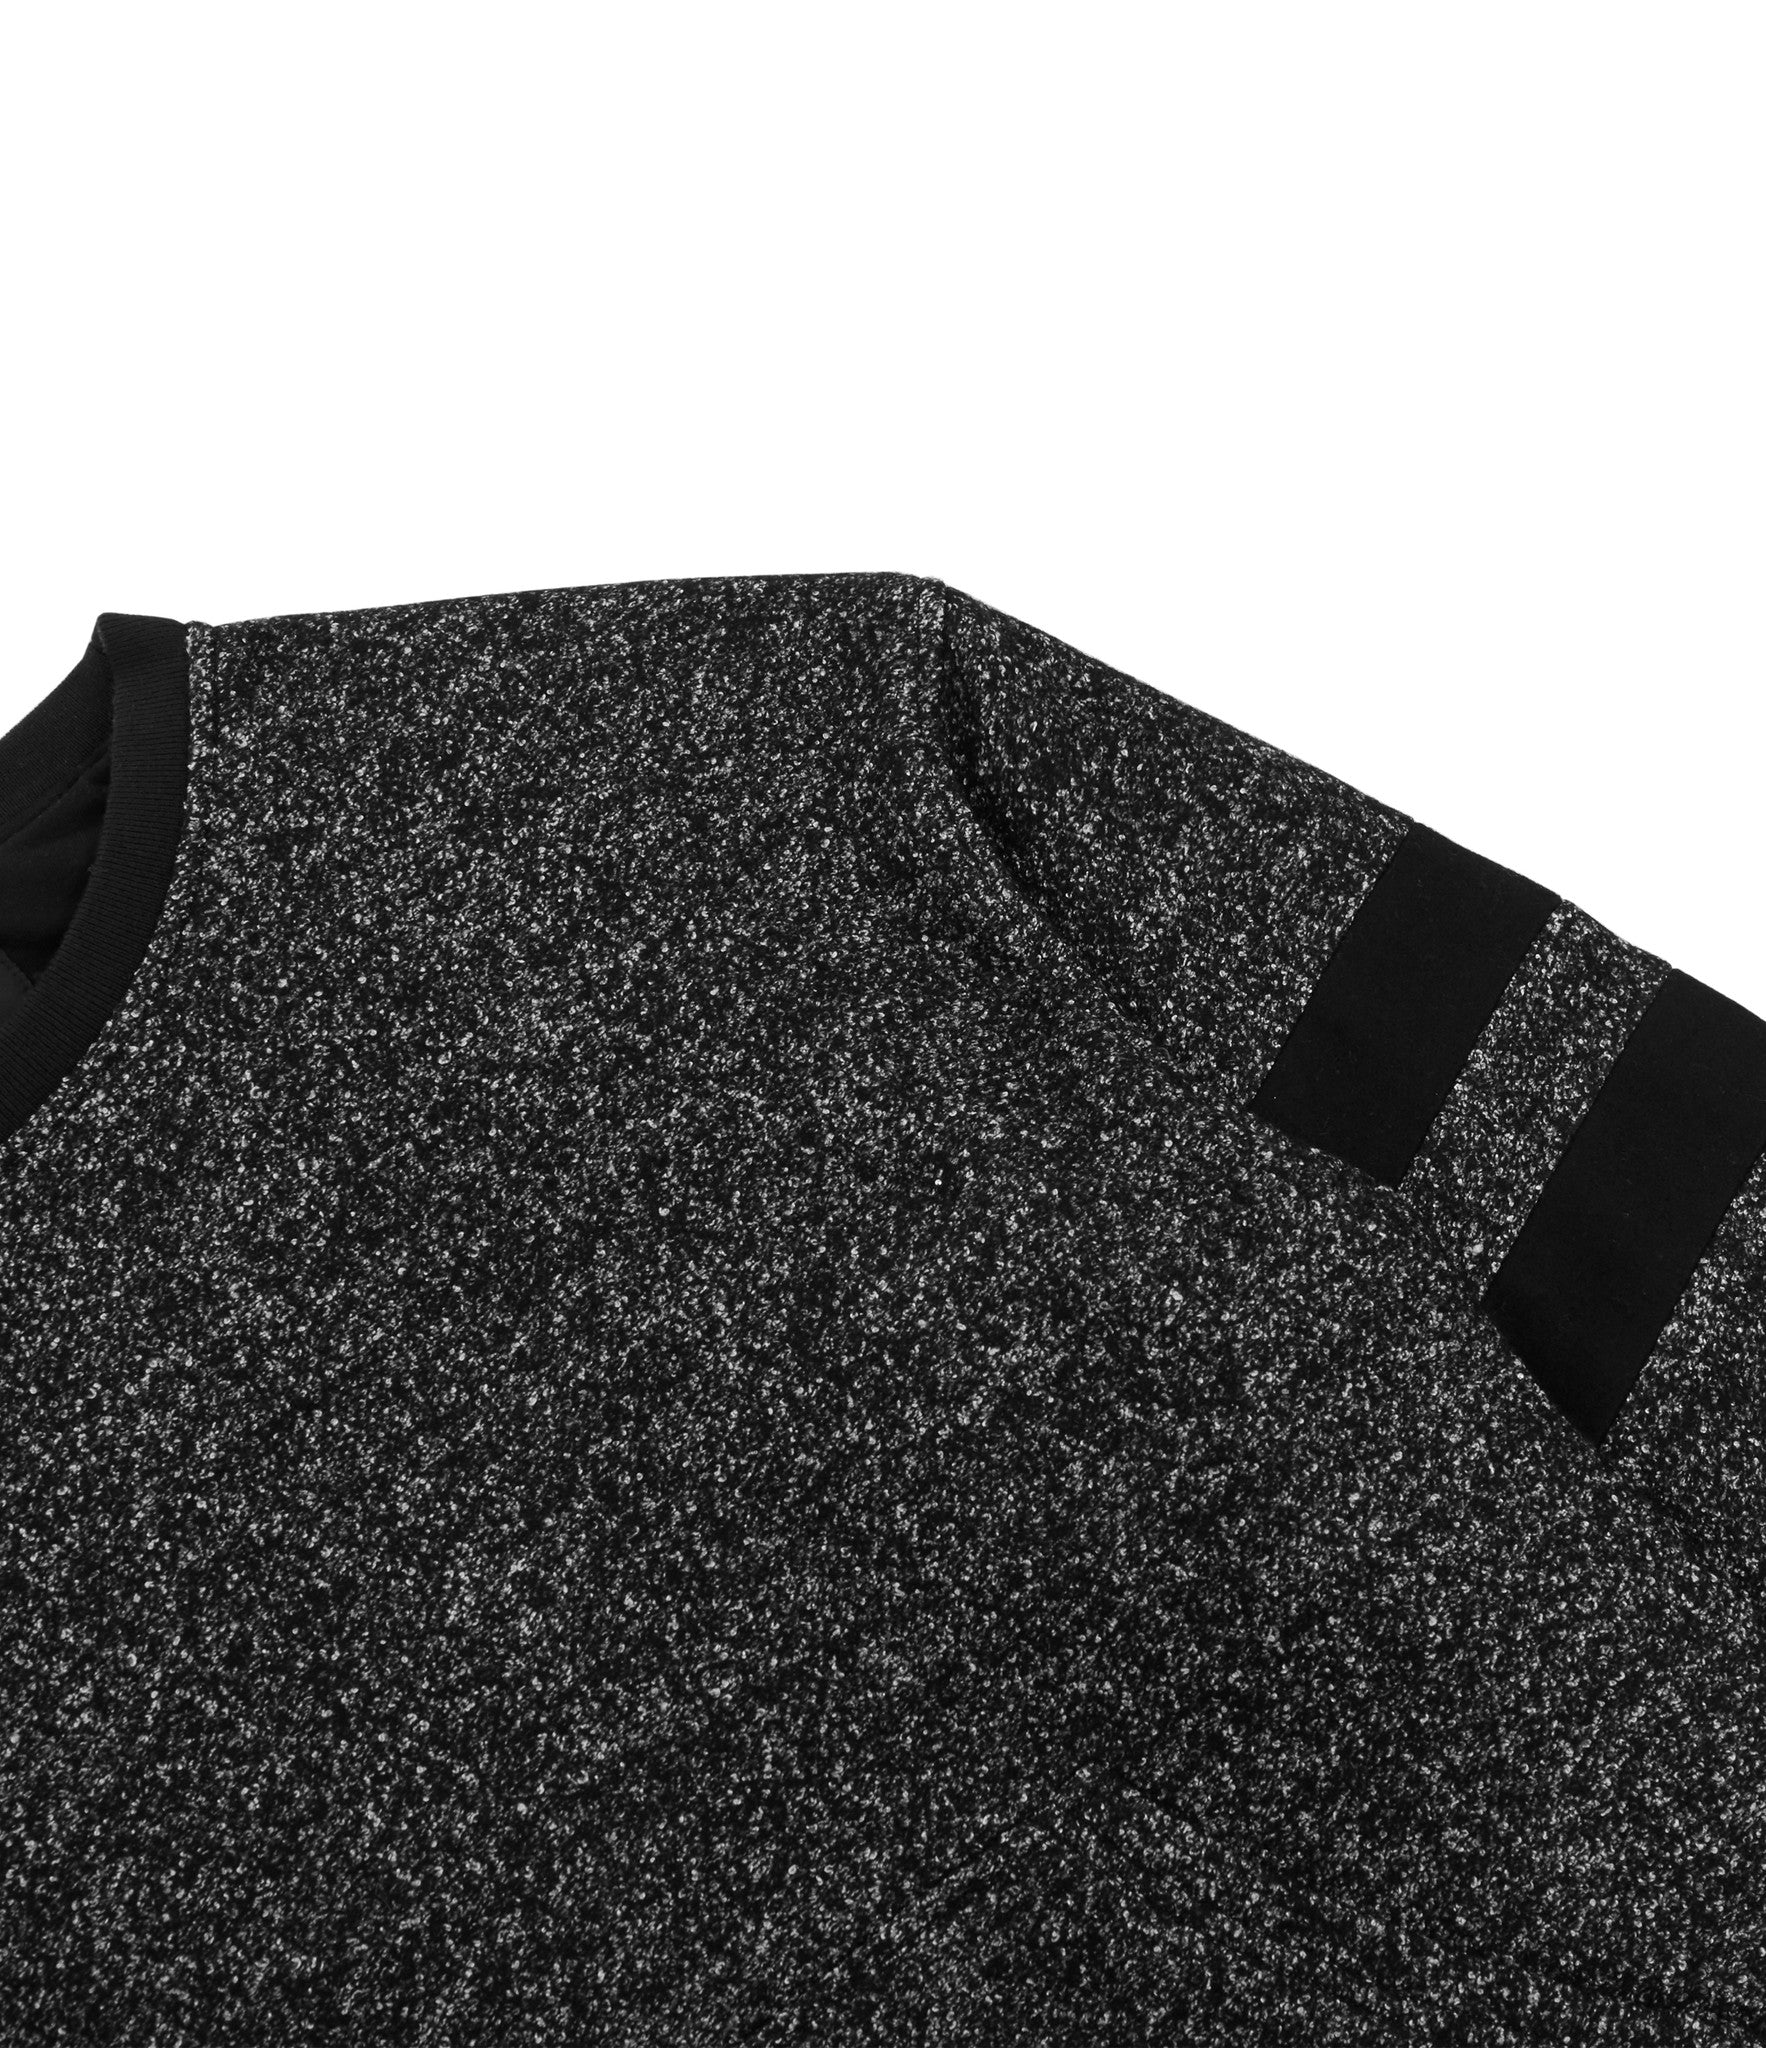 SW301 Oversized Mélange Wool Sweatshirt - Black - underated london - underatedco - 3